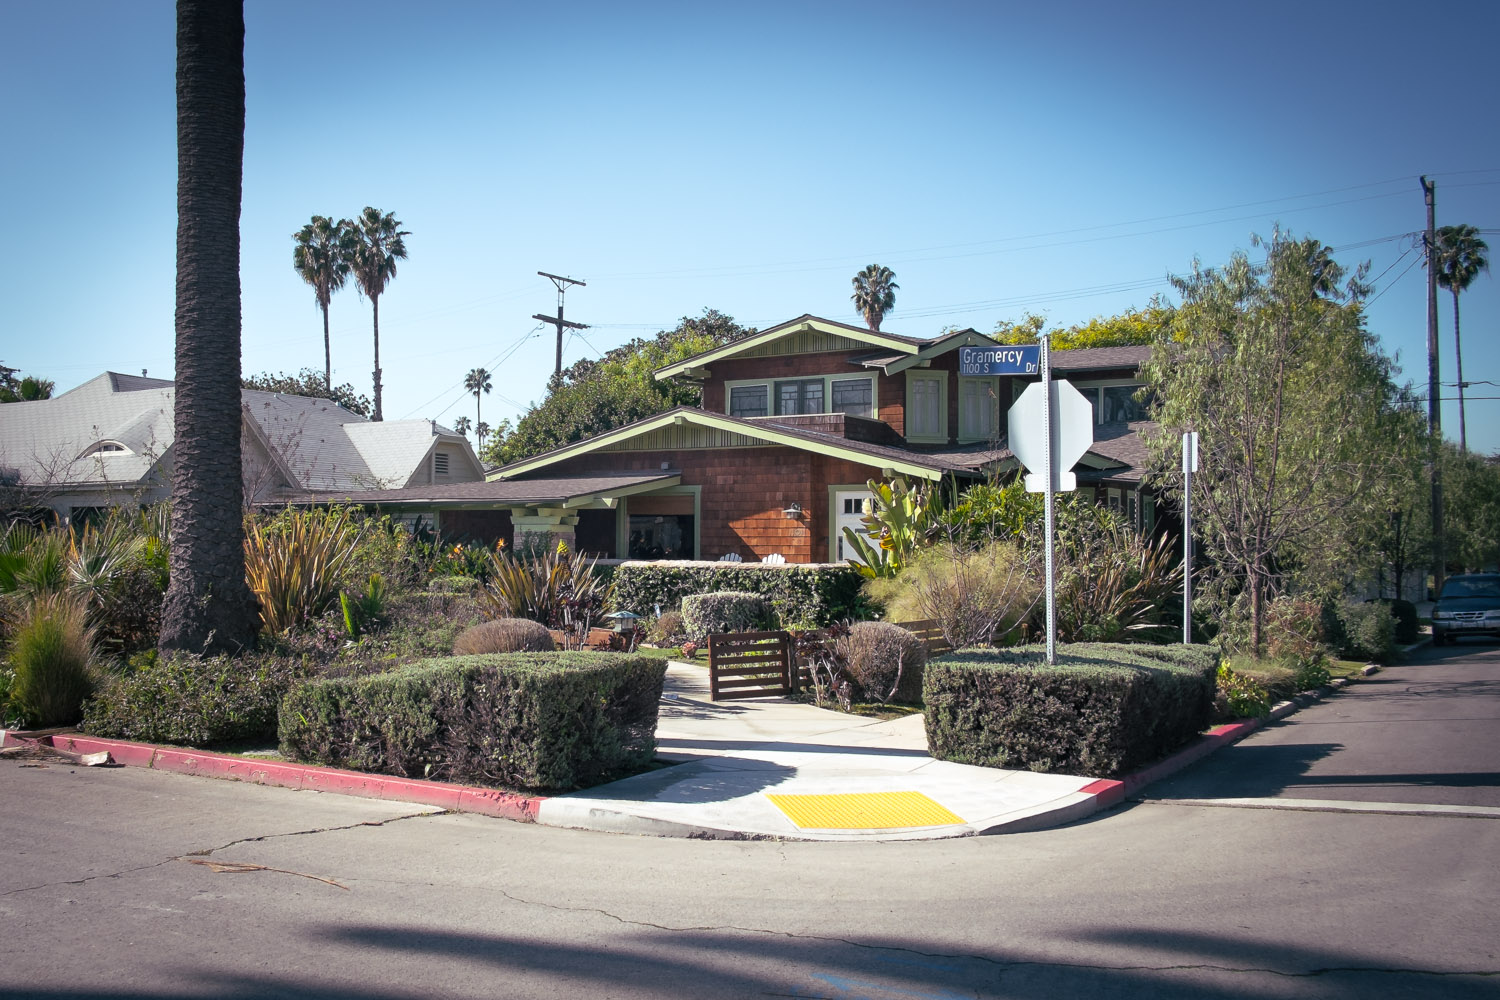 country-club-park-intersection-los-angeles.jpg